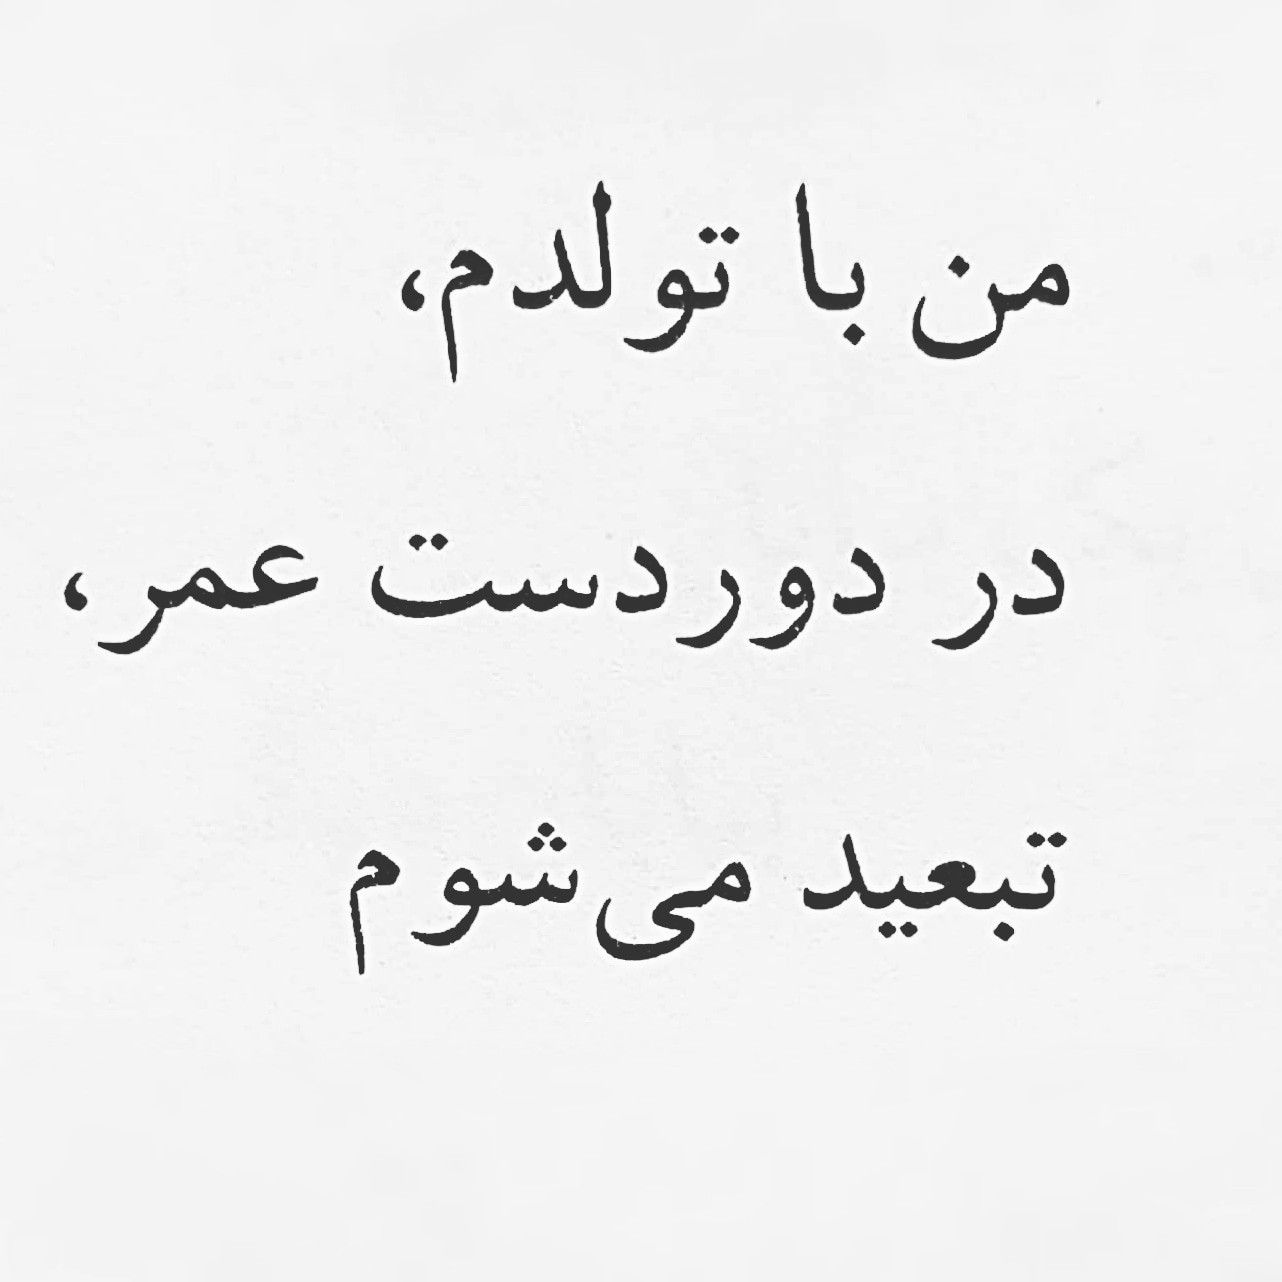 Farnaz Hashemnia Farsi Quotes Weird Words Persian Quotes